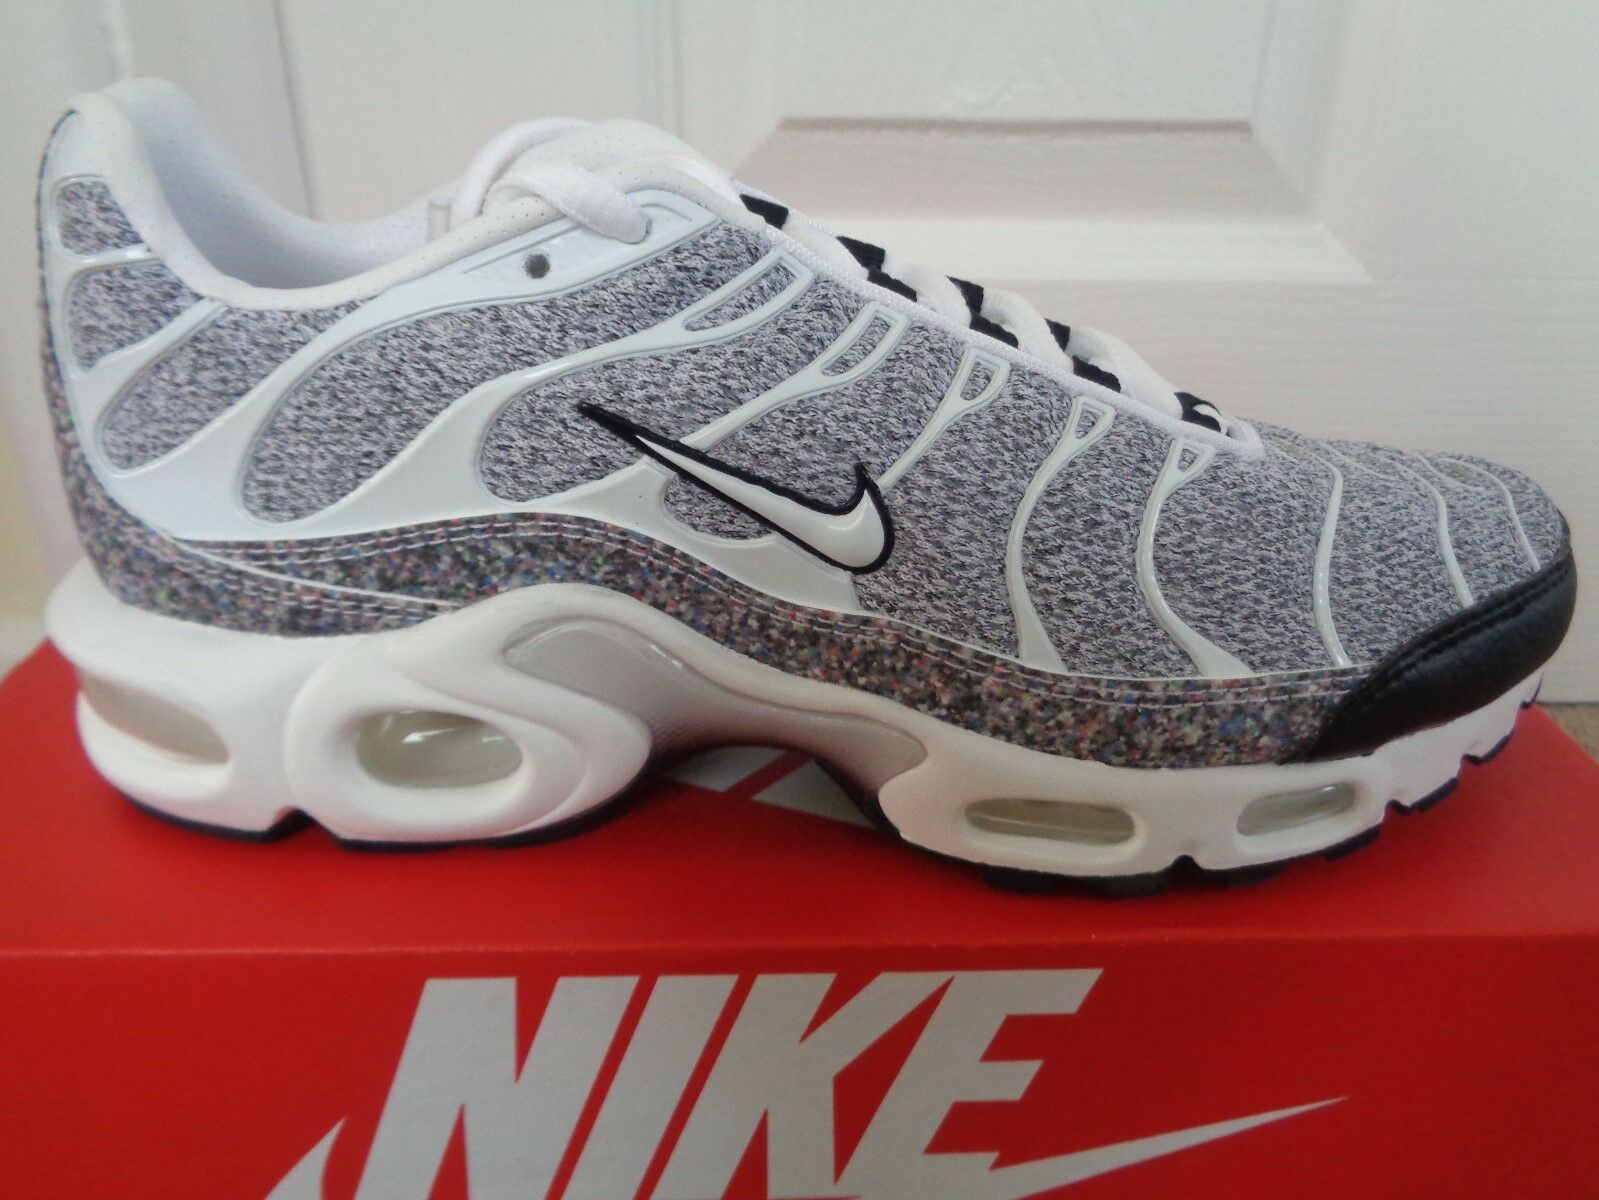 2Nike Air max plus SE wmns trainers sneaker 862201 100 uk 4.5 eu 38 us 7 NEW+BOX